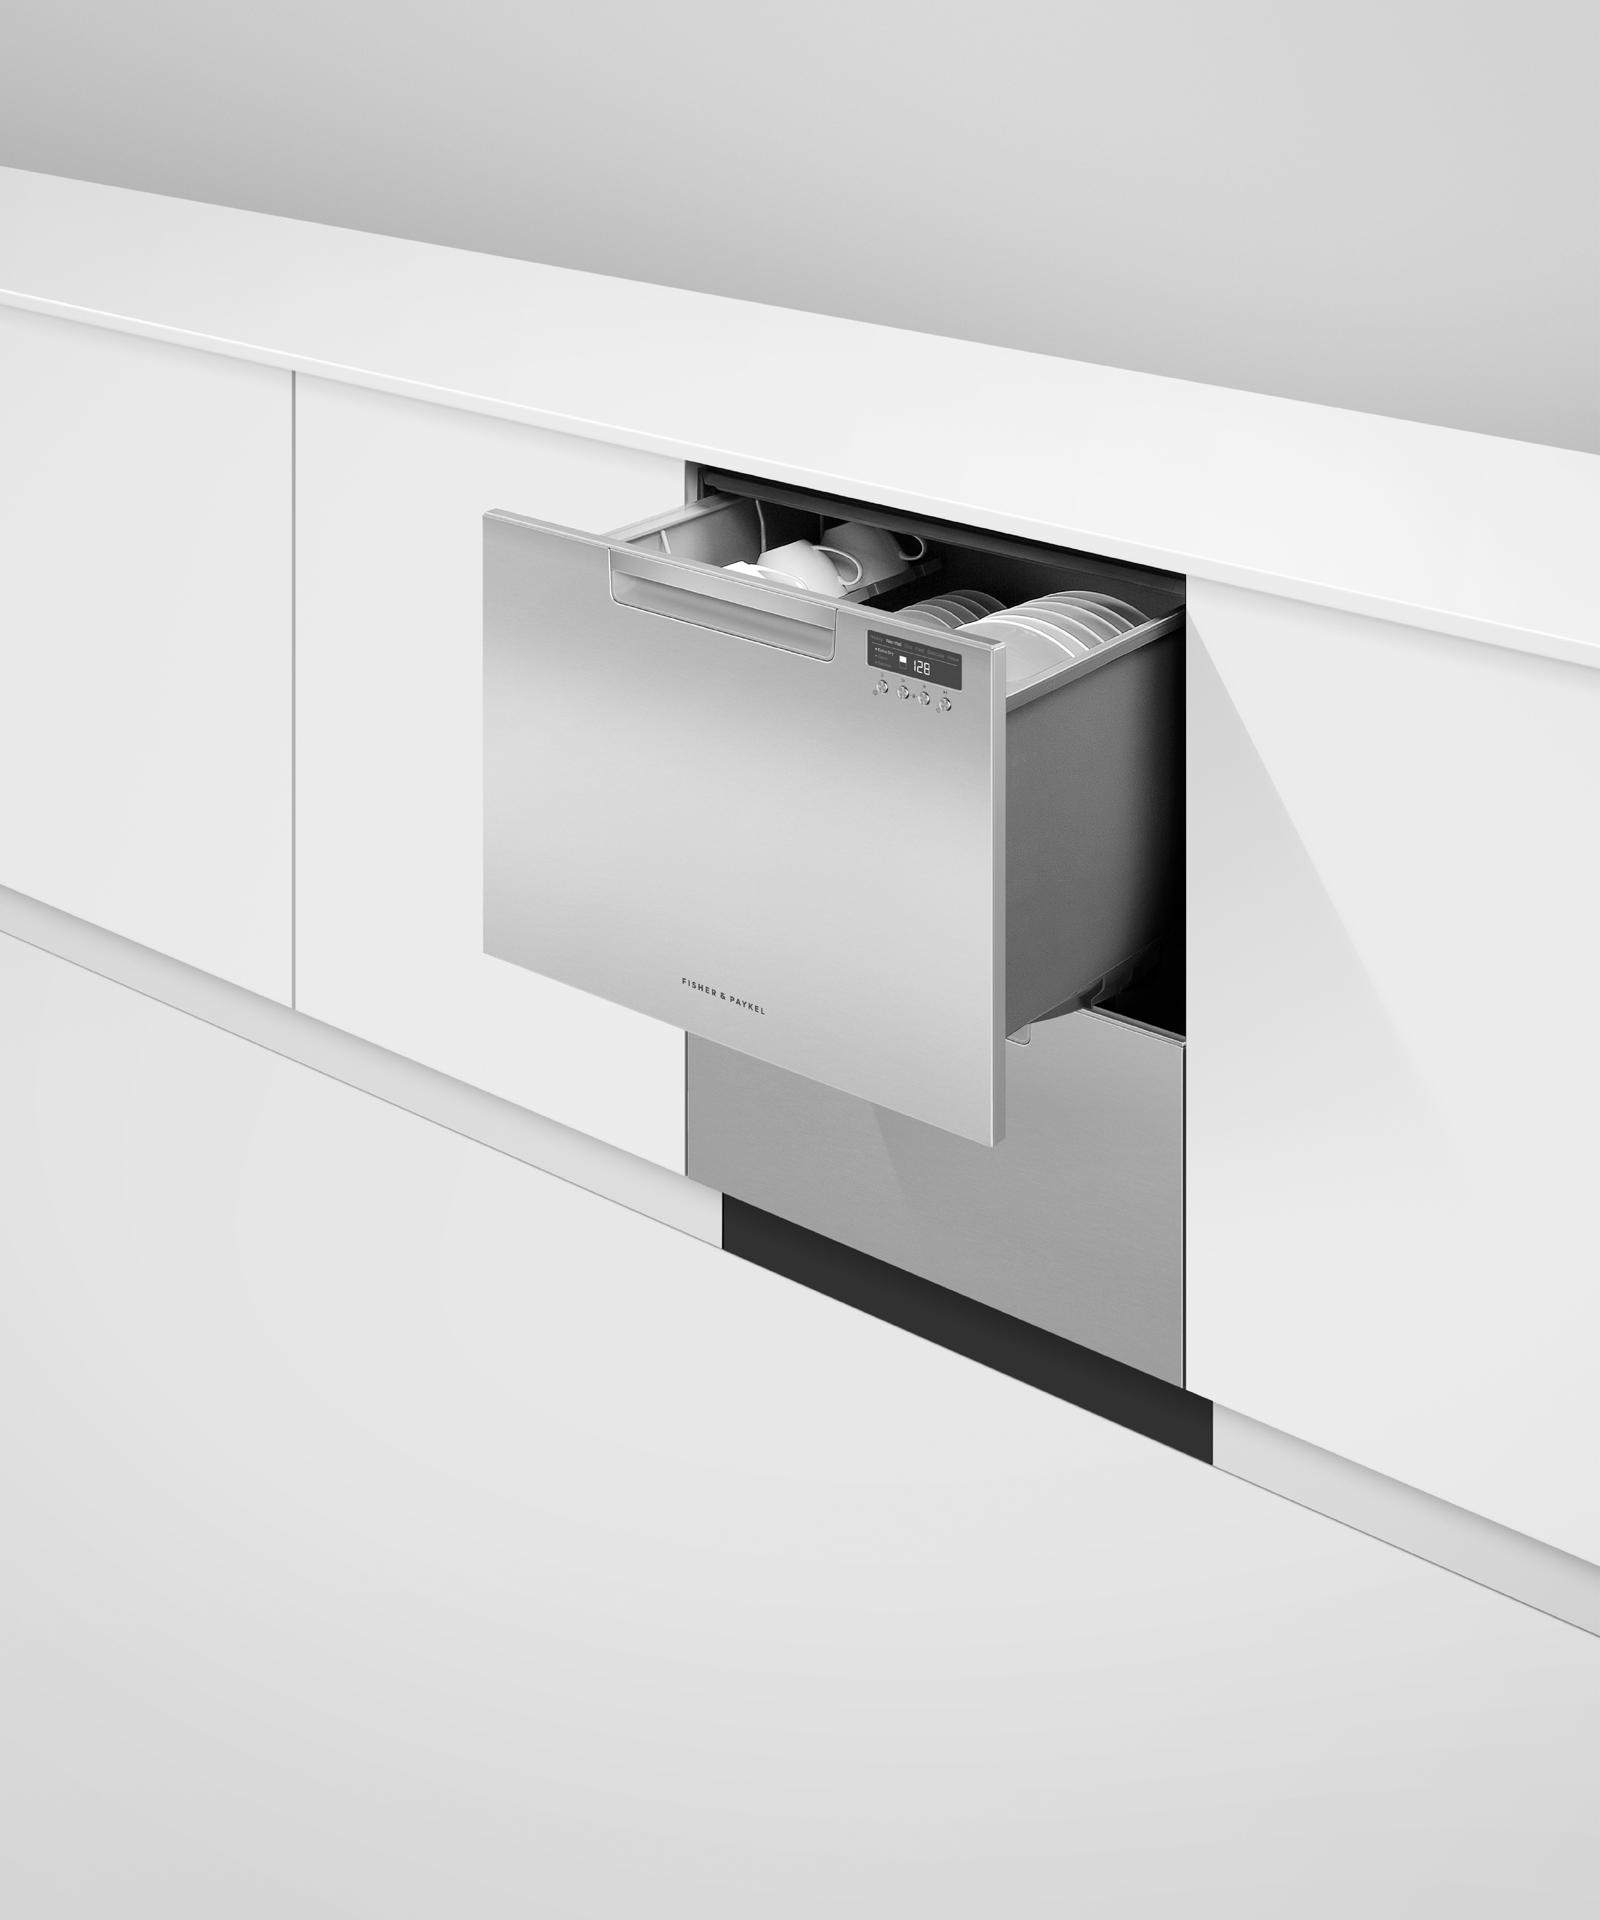 Model: DD24DCTX9 N   Fisher and Paykel Double DishDrawer™ Dishwasher, Tall, Sanitize